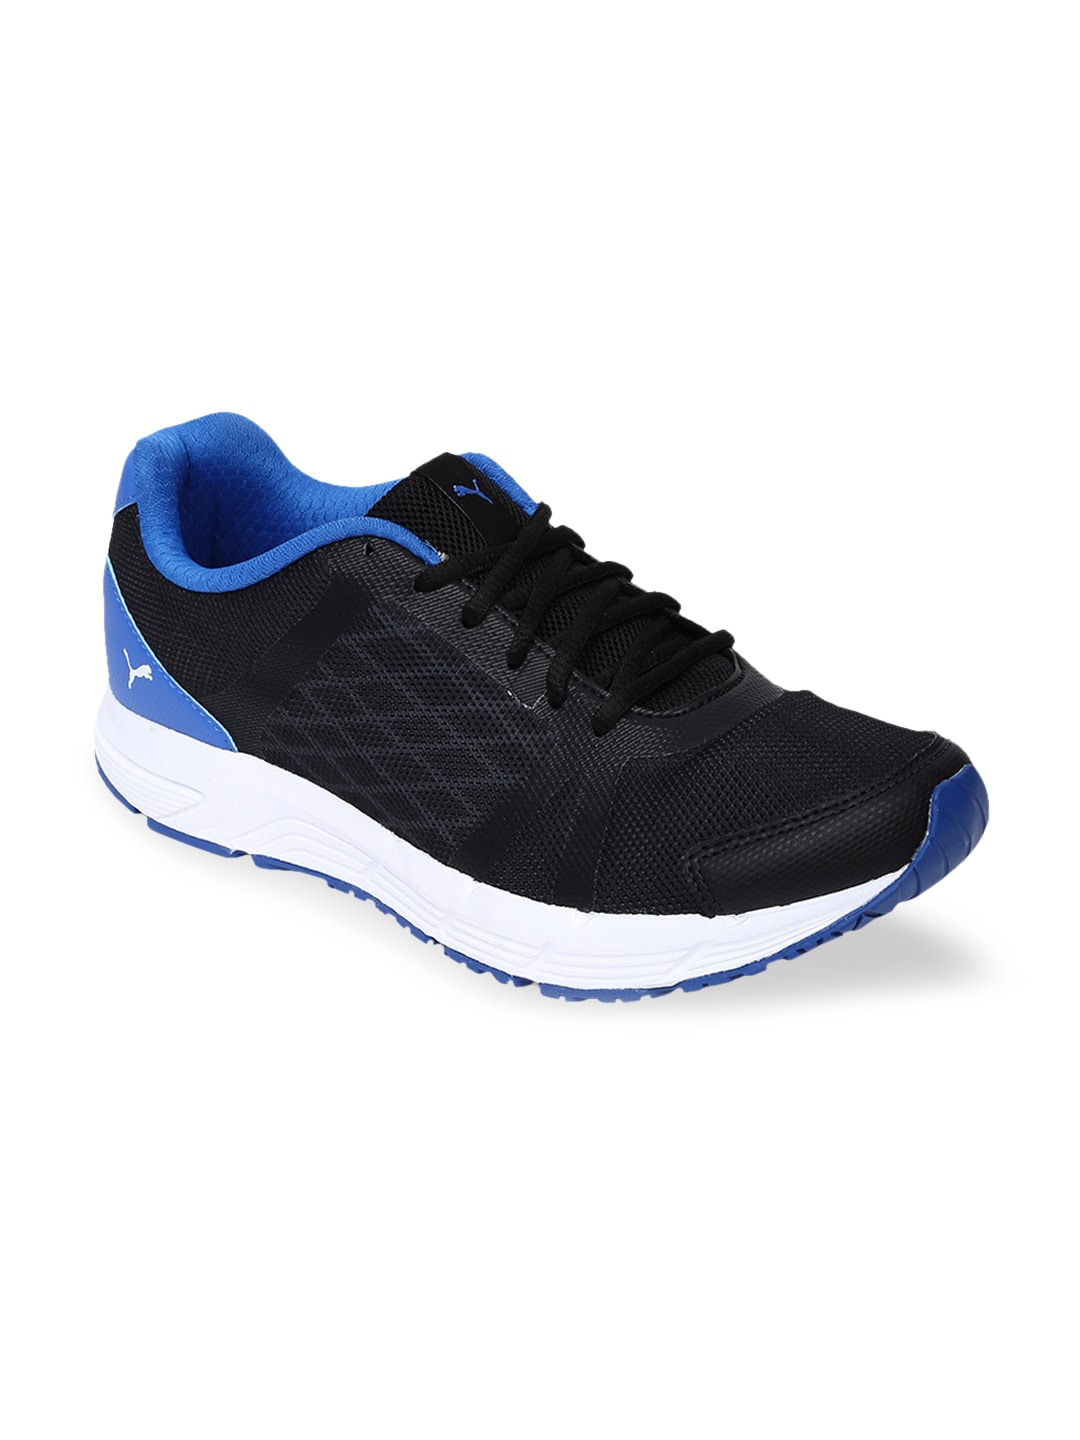 Buy PUMA Unisex Grey Bolster DP Running Shoes - Sports Shoes for ... d9d44ee51